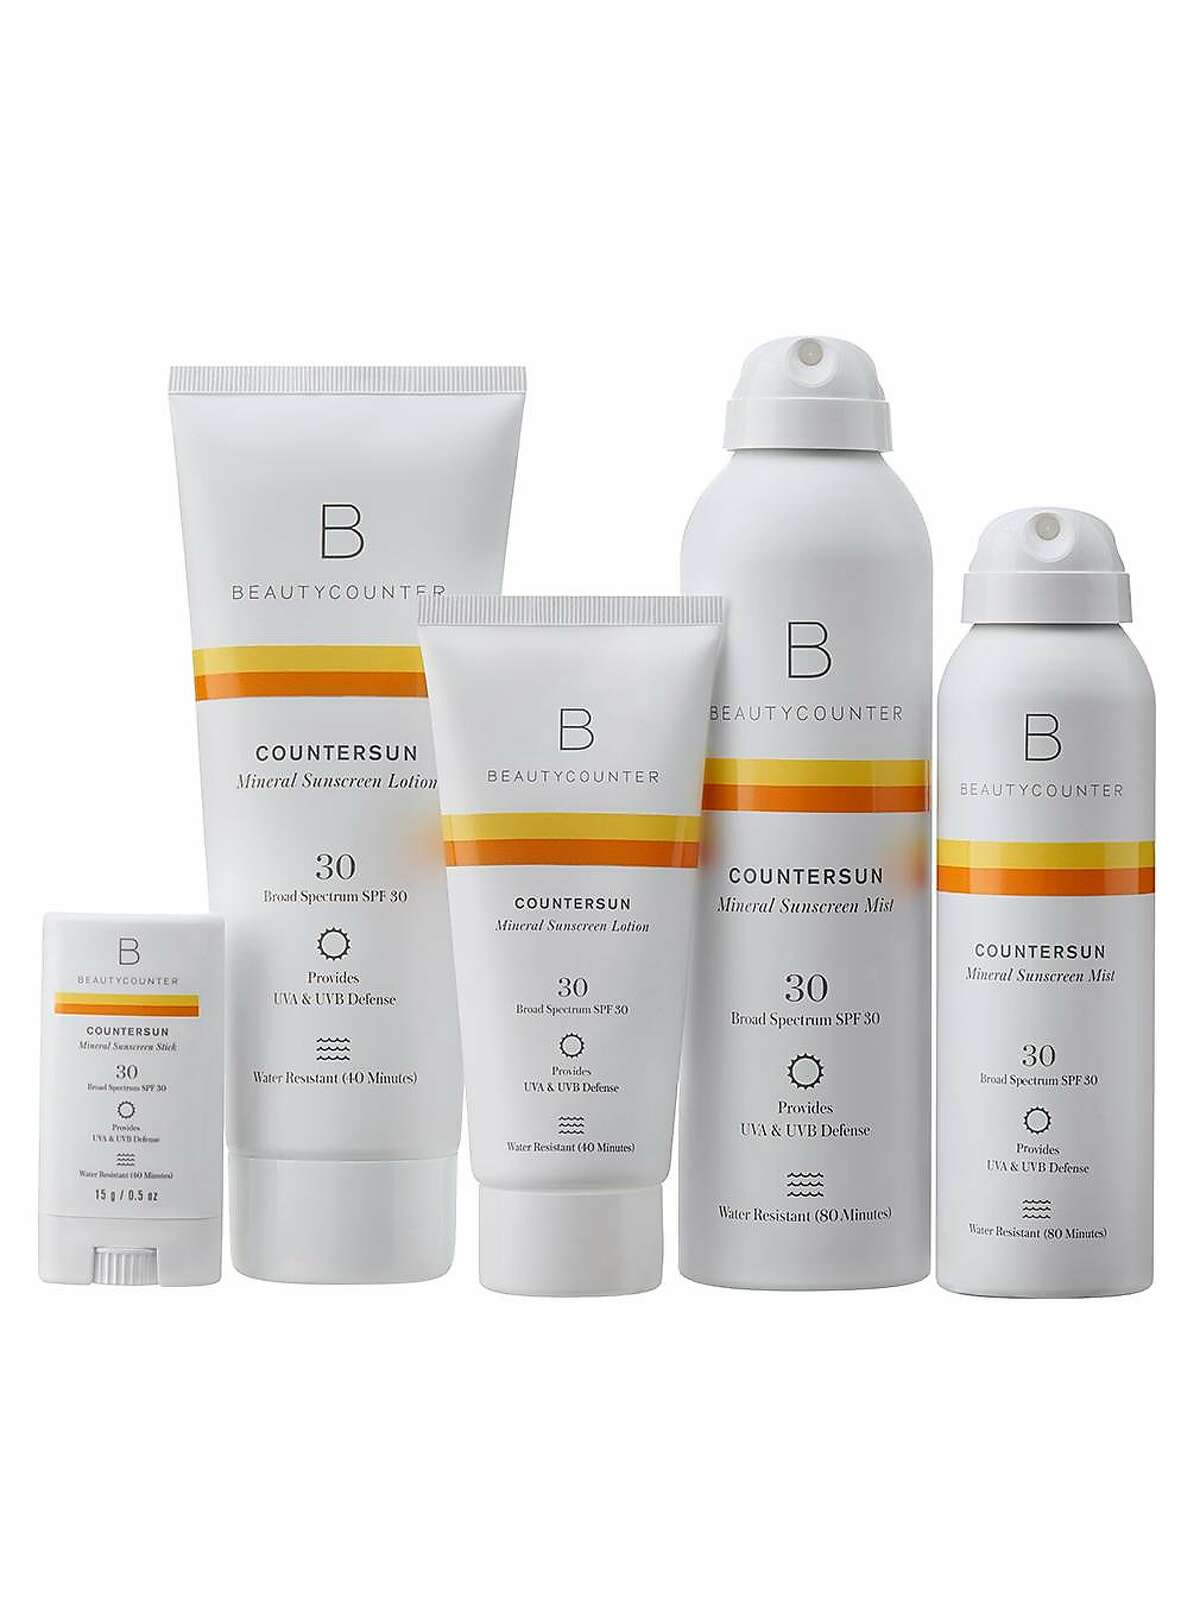 Beautycounter's Countersun Mineral Sunscreen Lotion SPF 30�is a water-resistant, reef-friendly sunscreen that also comes in a non-nanoparticle mist and solid stick. $20.